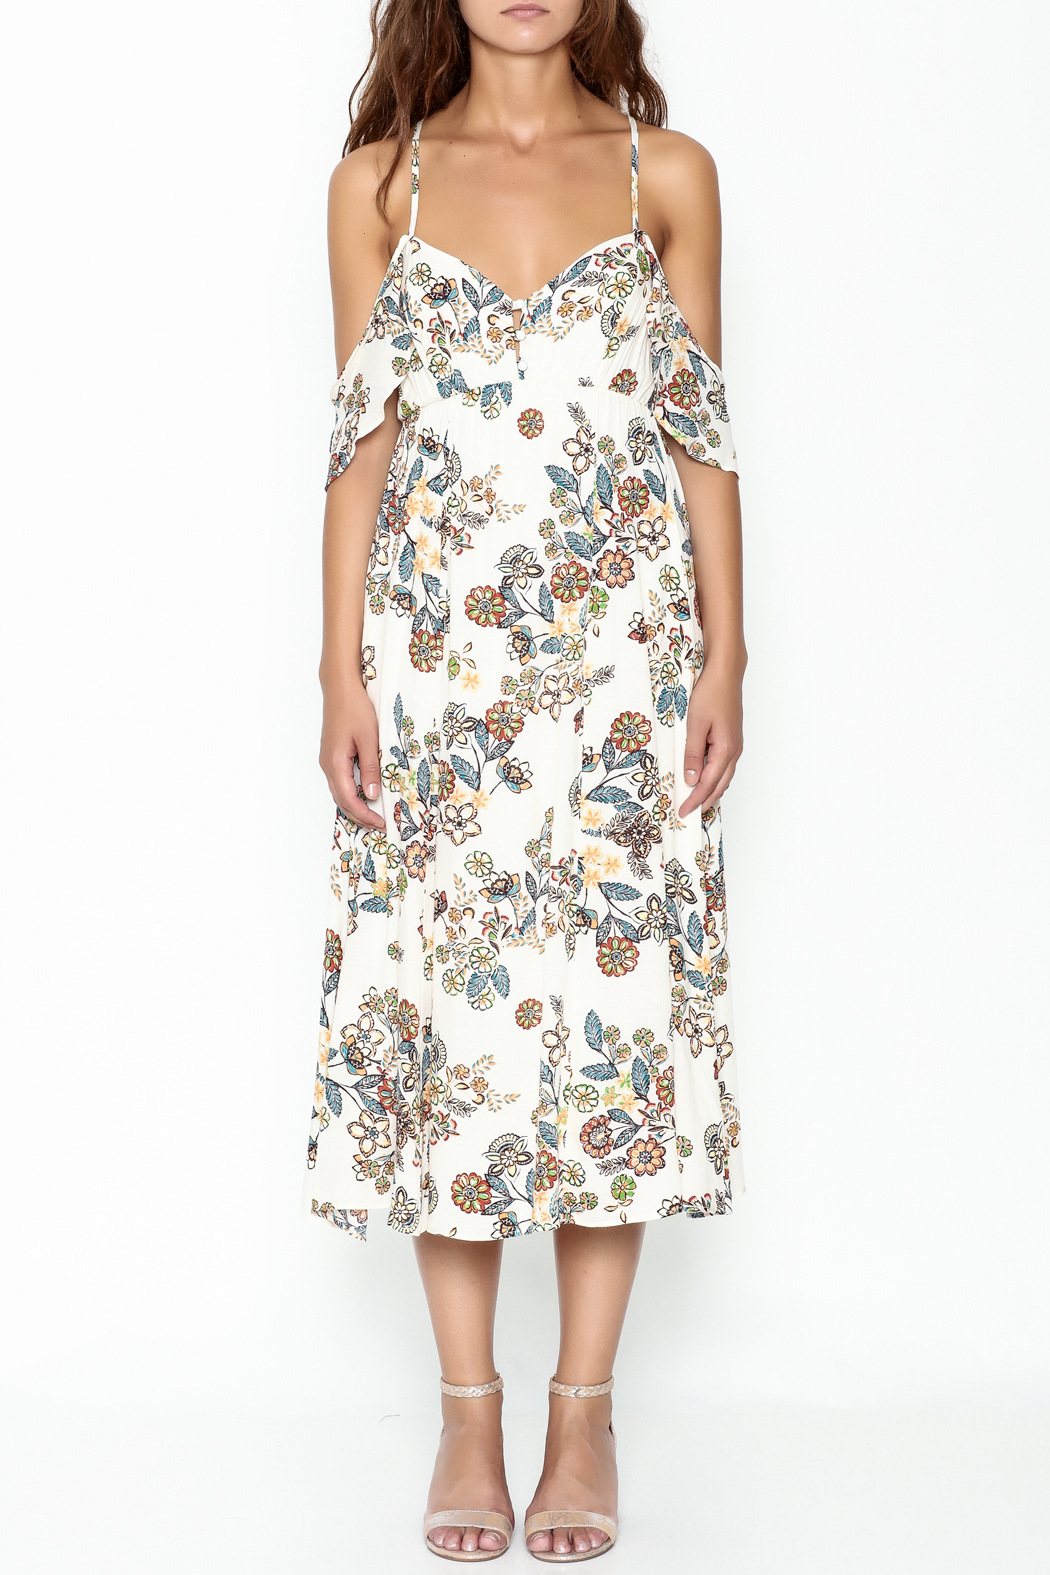 hummingbird Floral Dress - Front Full Image